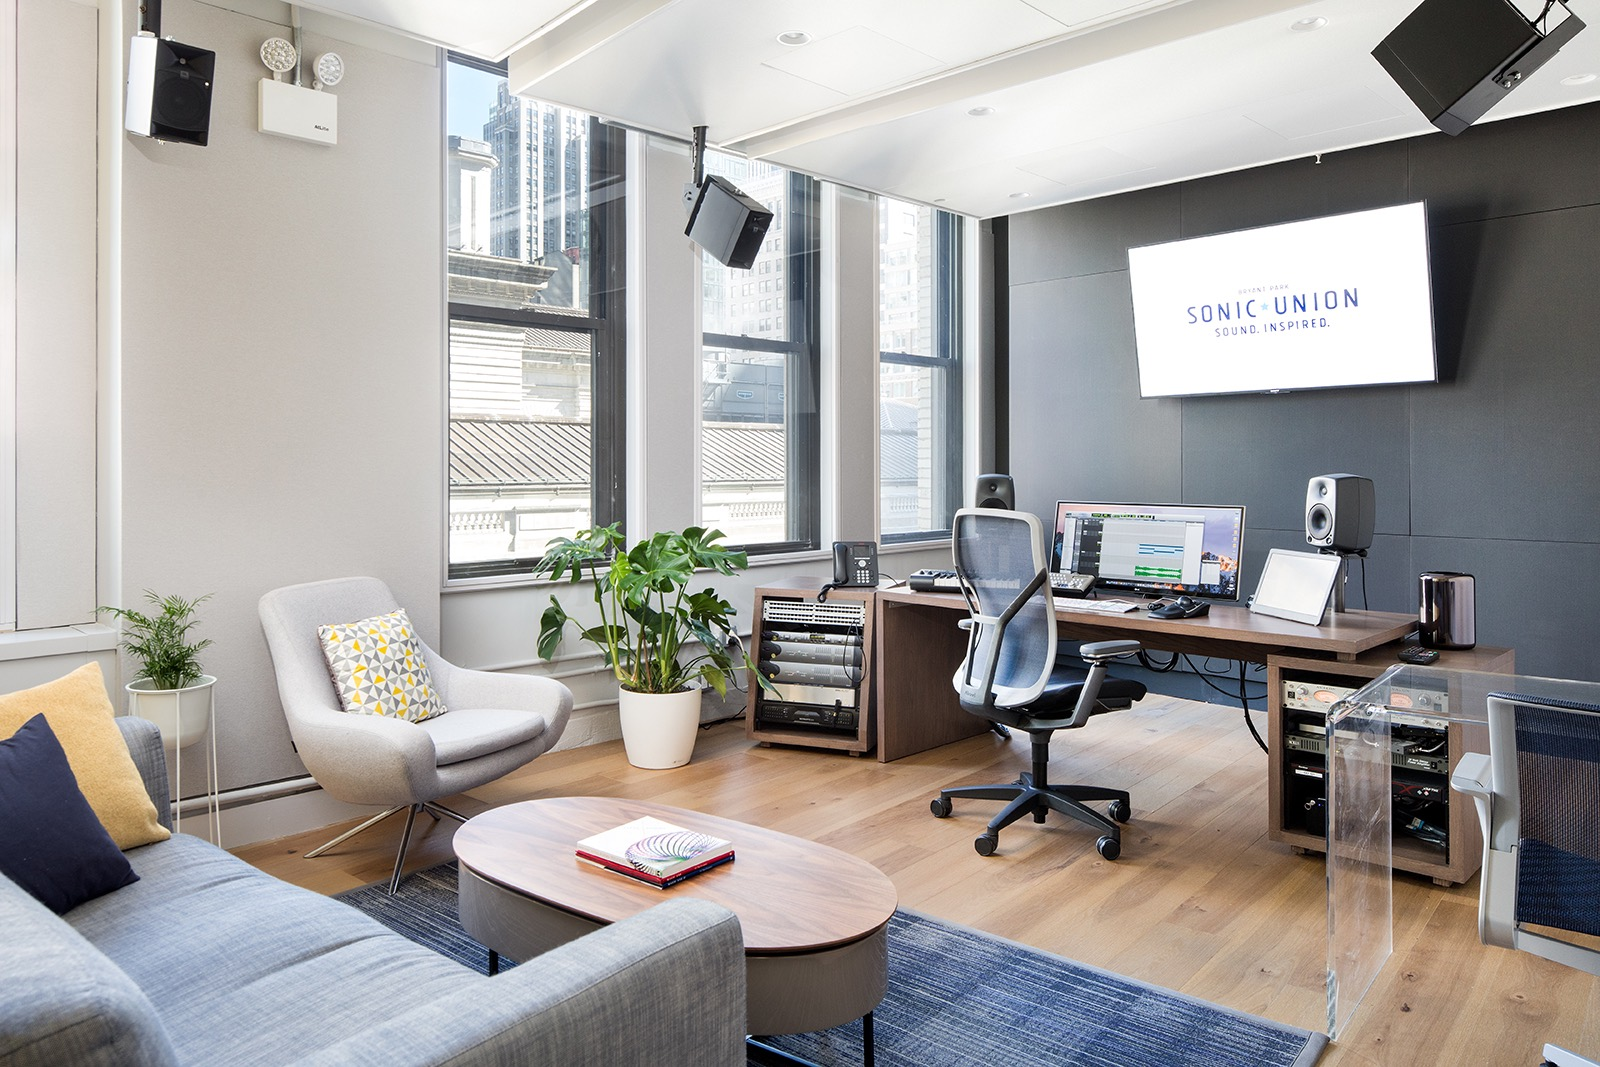 sonic-union-nyc-office-5